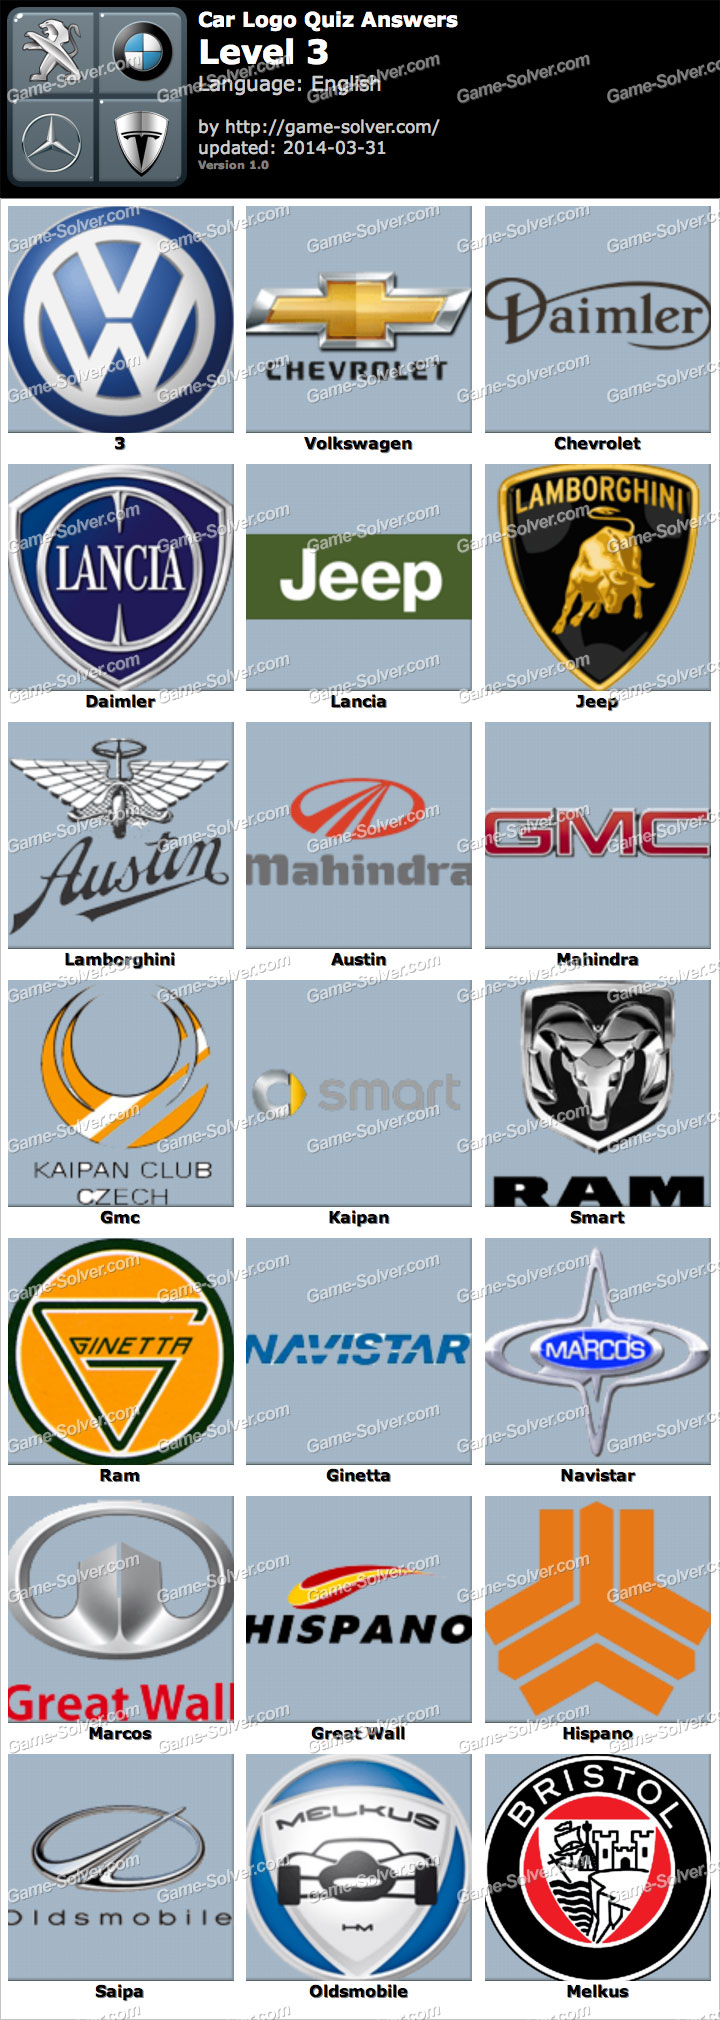 car logo quiz level 3 game solver